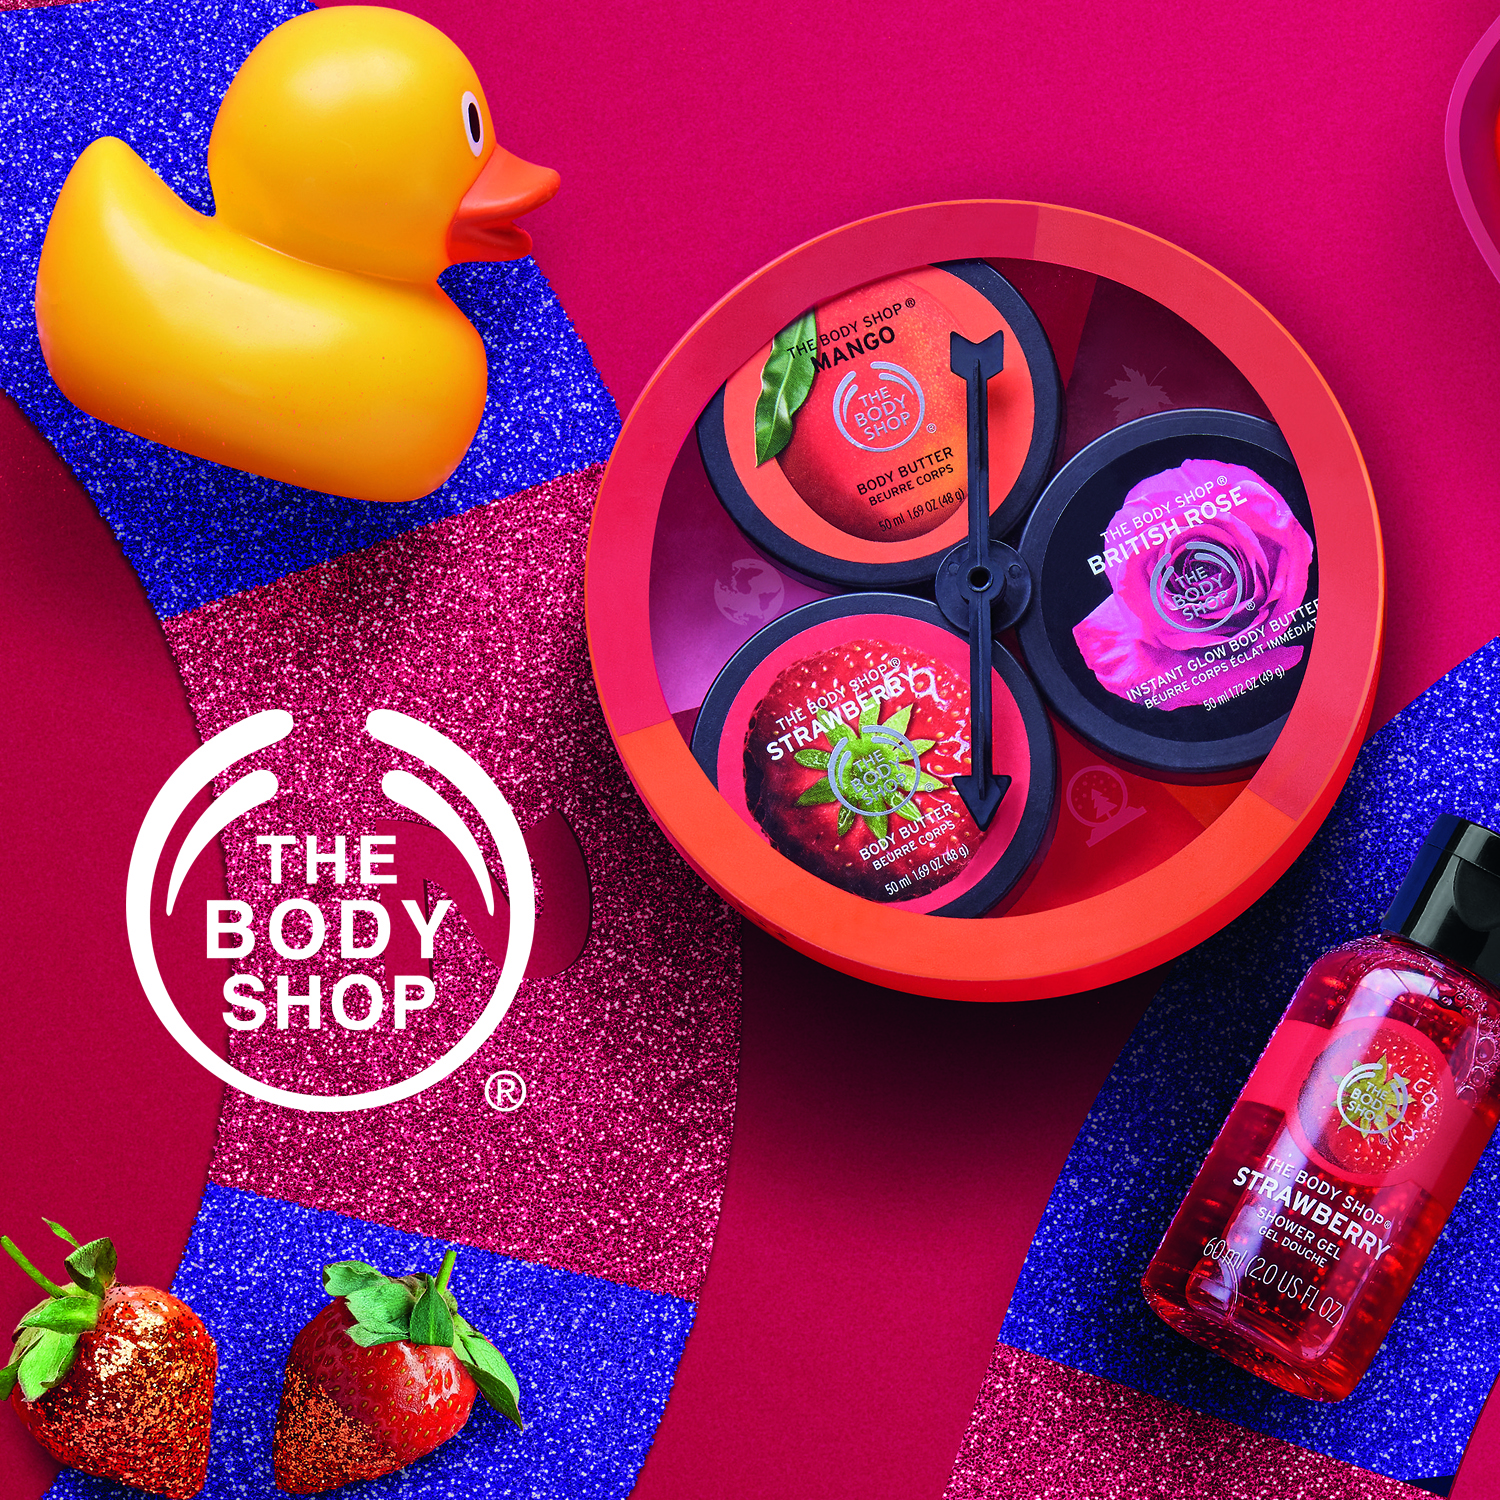 The Body shop 1500px_1500px_Highres 4